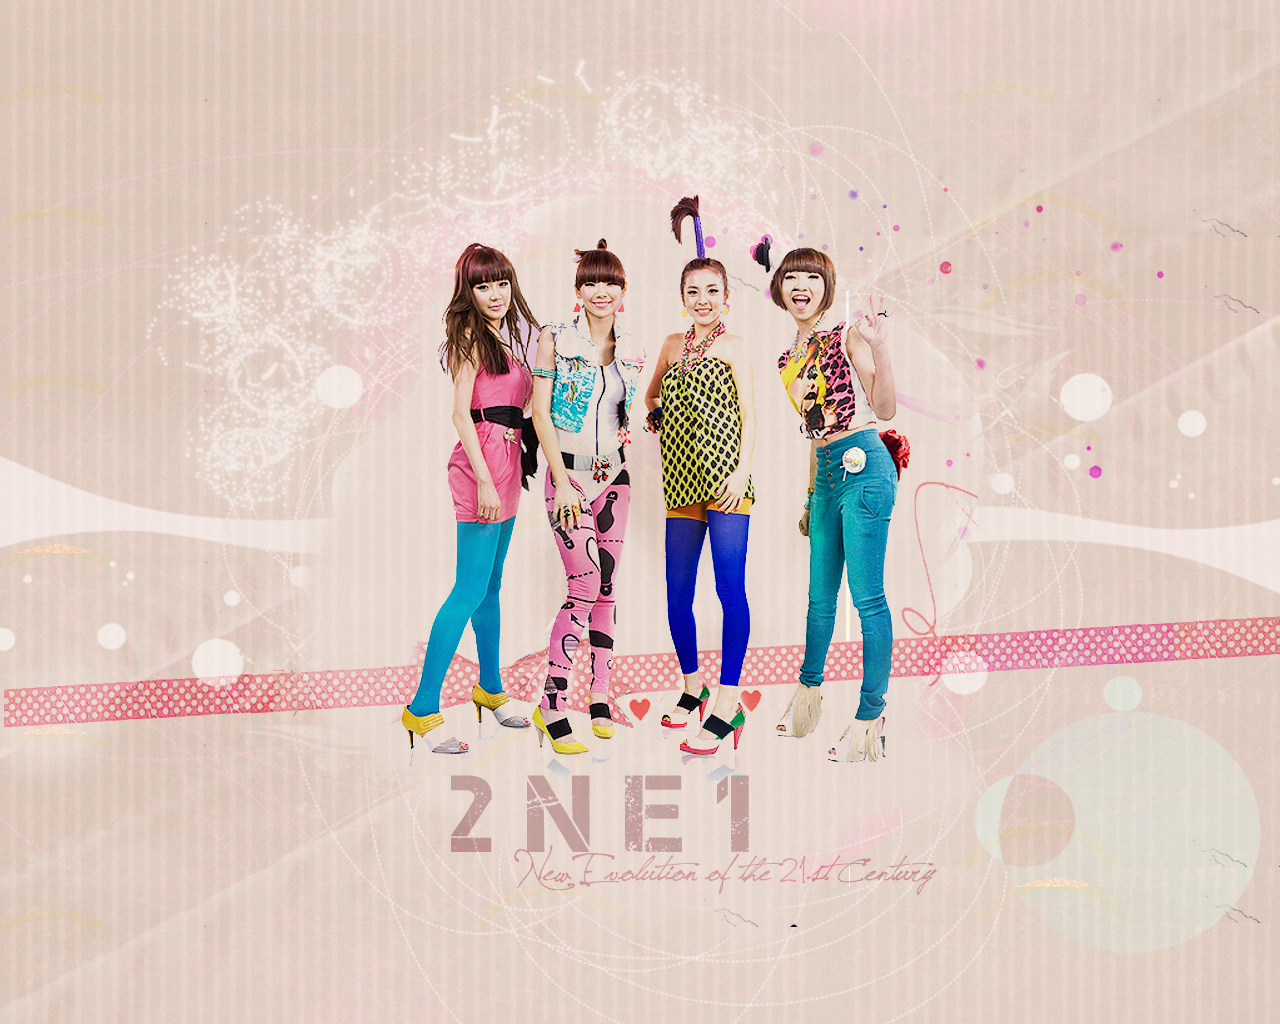 http://2.bp.blogspot.com/_FjFR9sRN-As/TQtKmVBywCI/AAAAAAAAABY/YZLiSA2sq4Q/s1600/2NE1_Wallpaper_by_kairomon.jpg